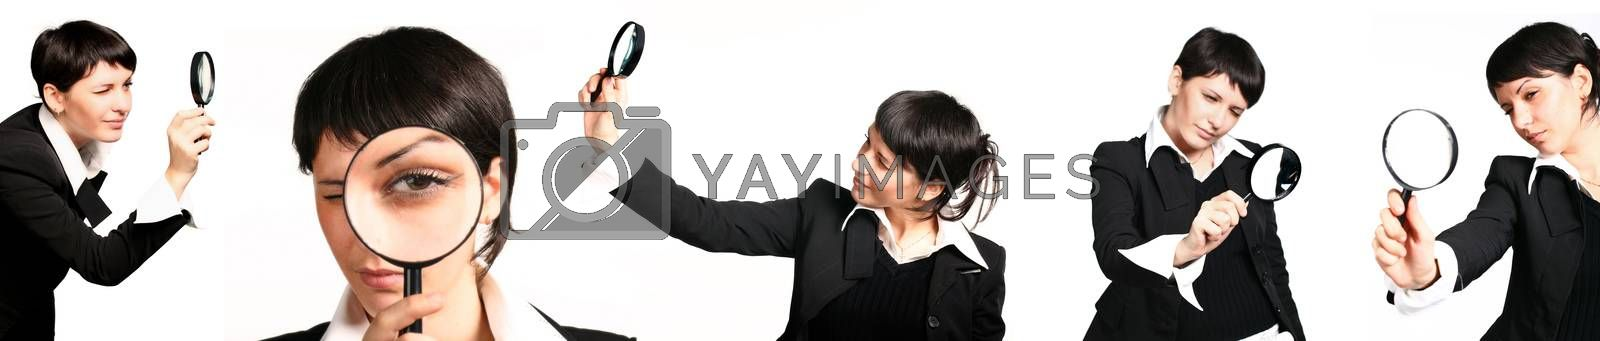 Business woman holding magnifying glass, set of pictures isolated on white background